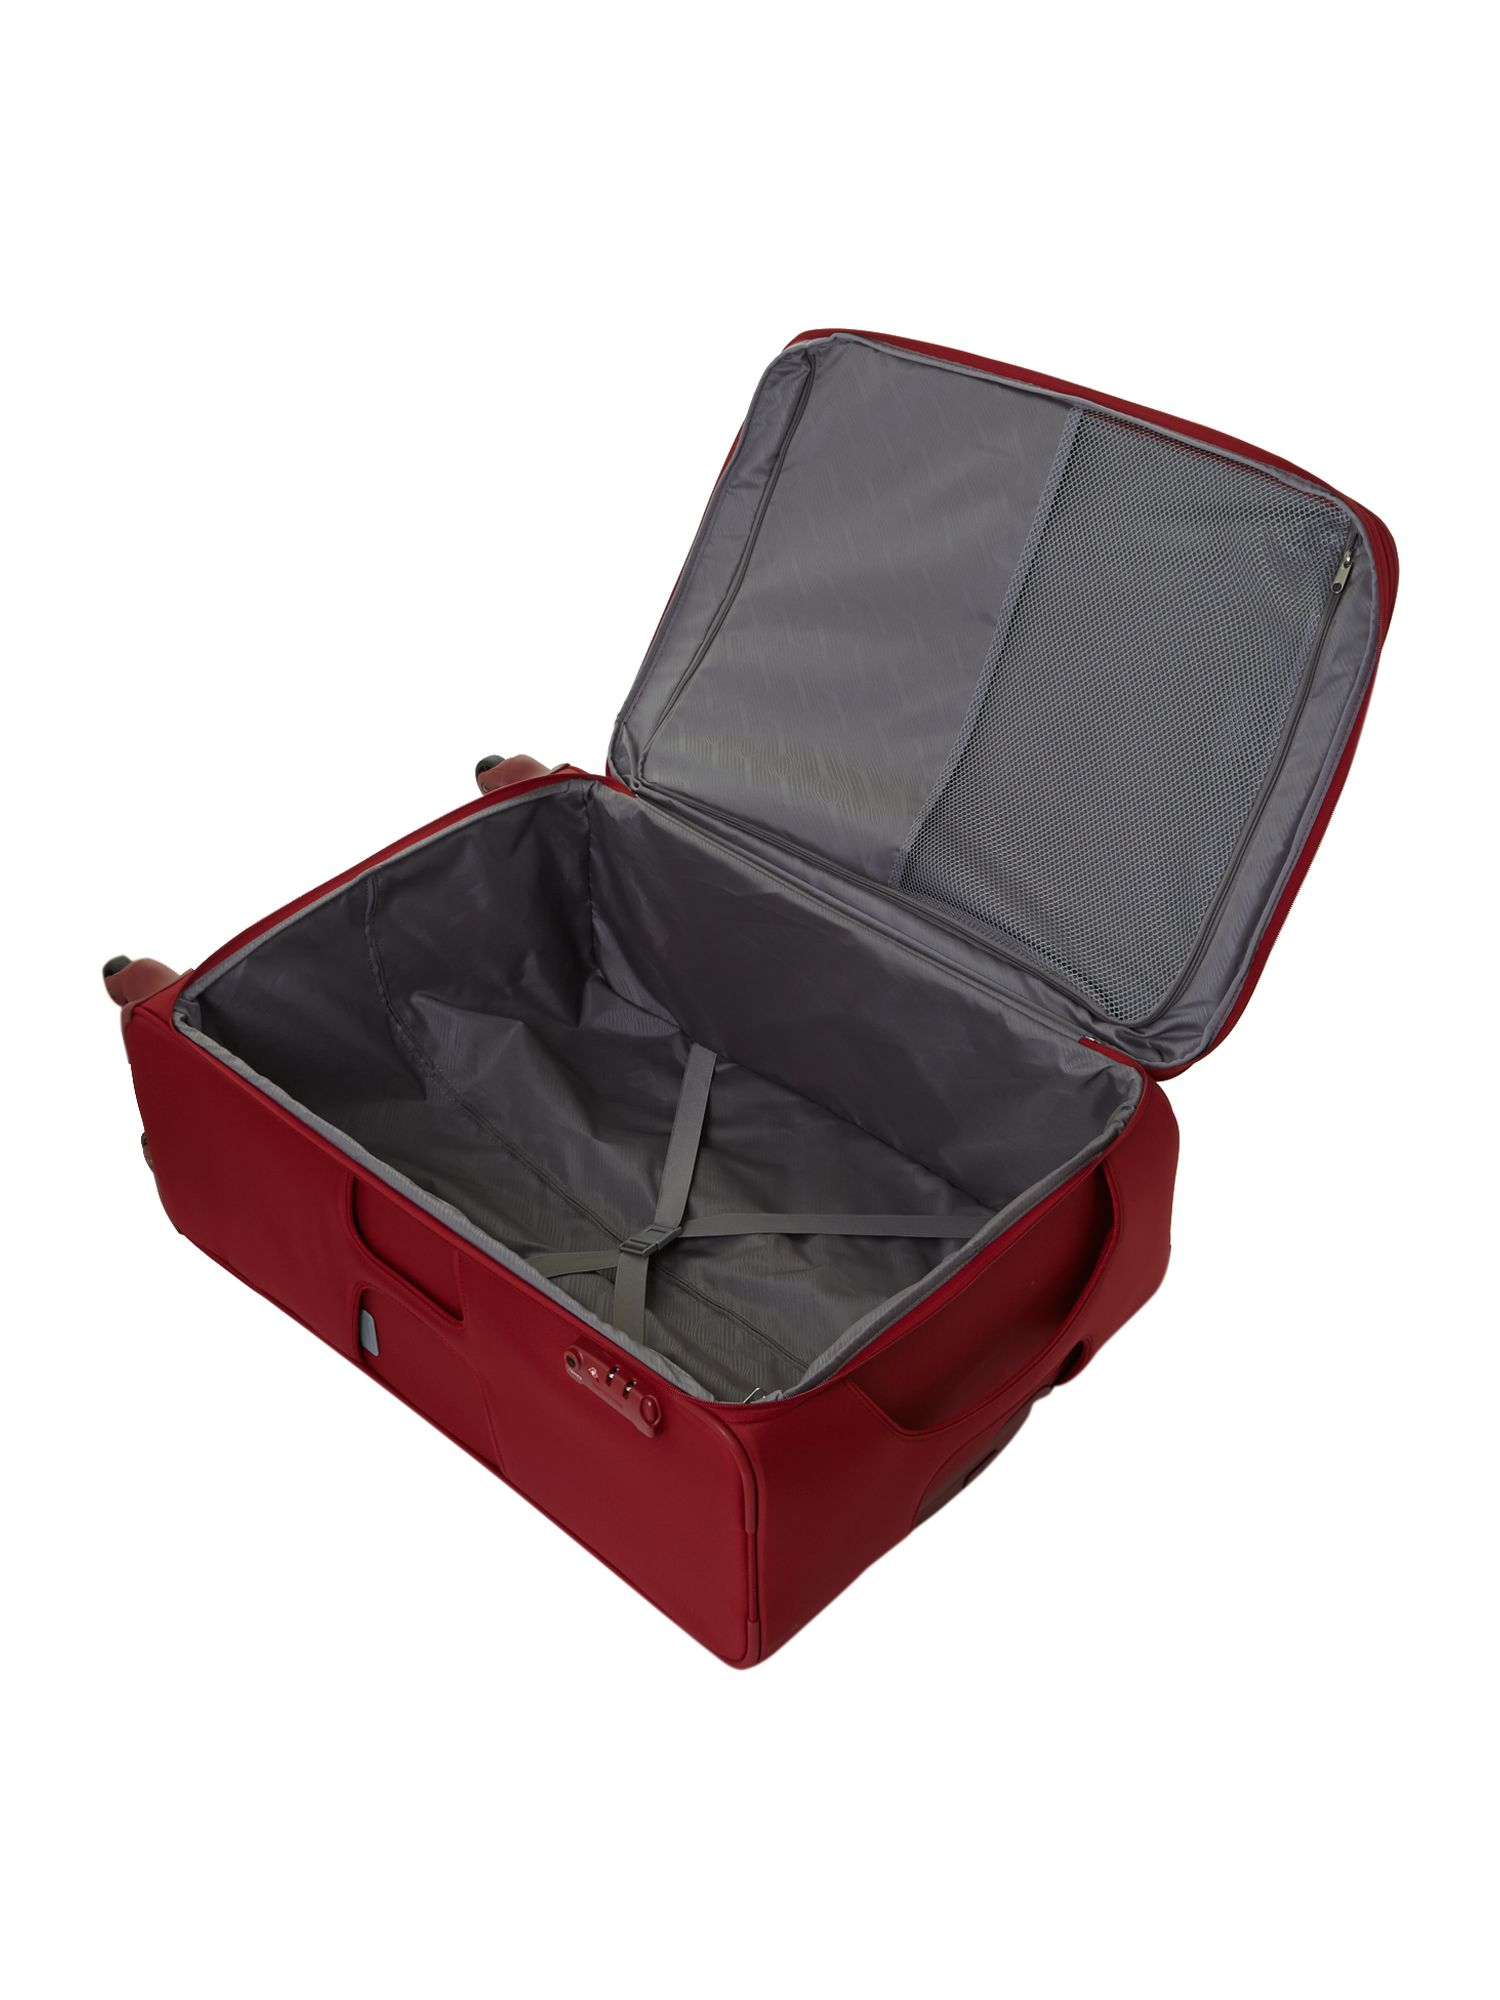 New B-Lite 4-wheel large suitcase